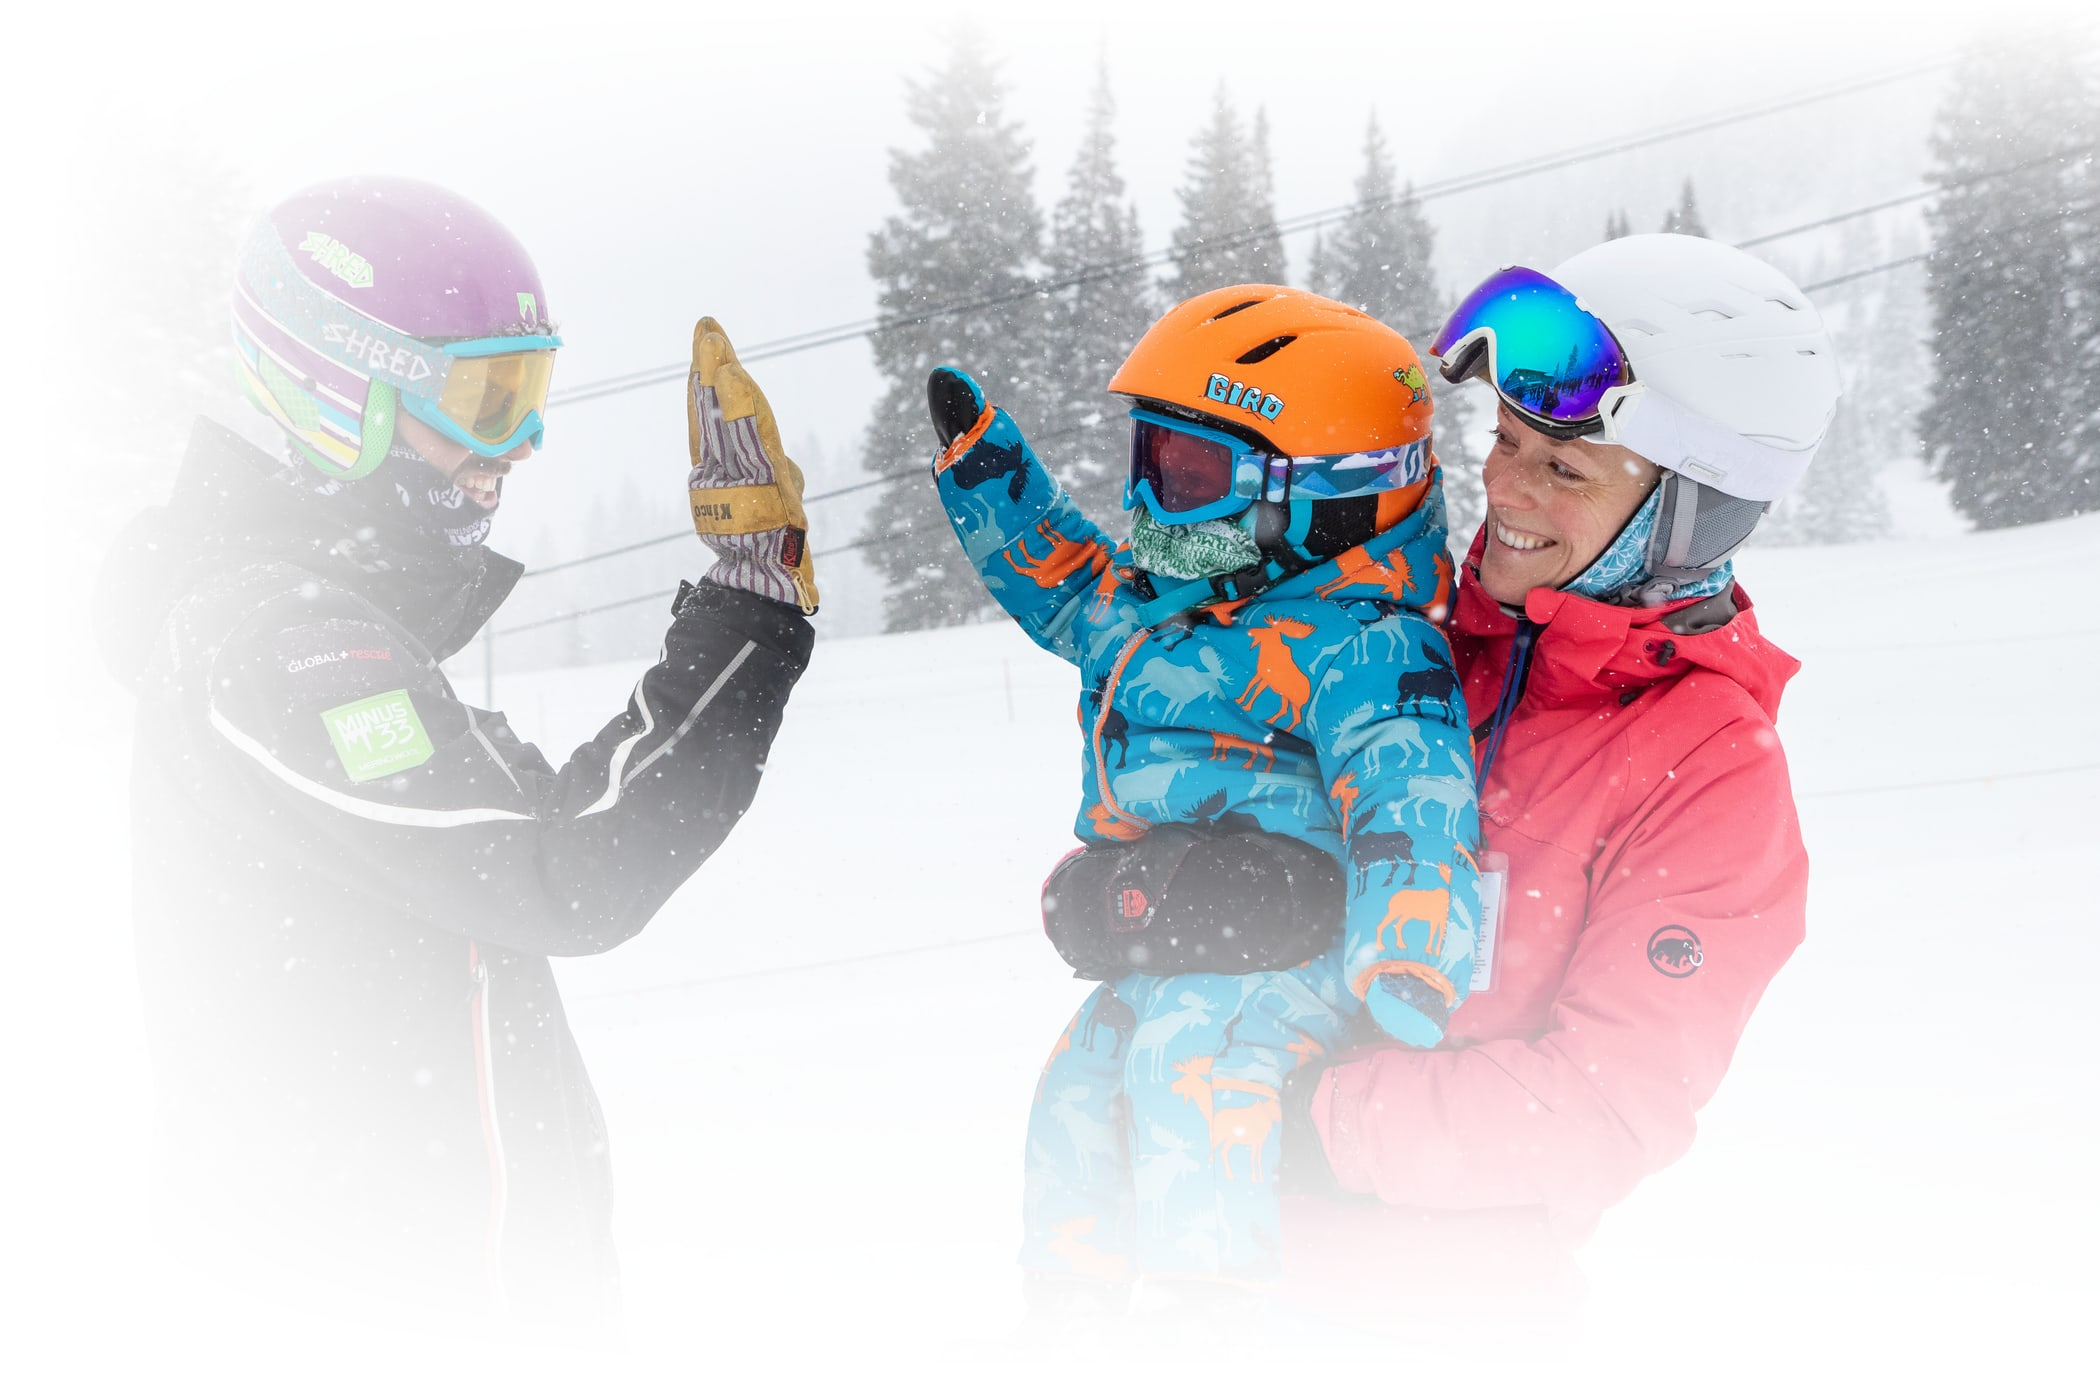 Season Pass Benefits Marquee Image of High-fives in the snow